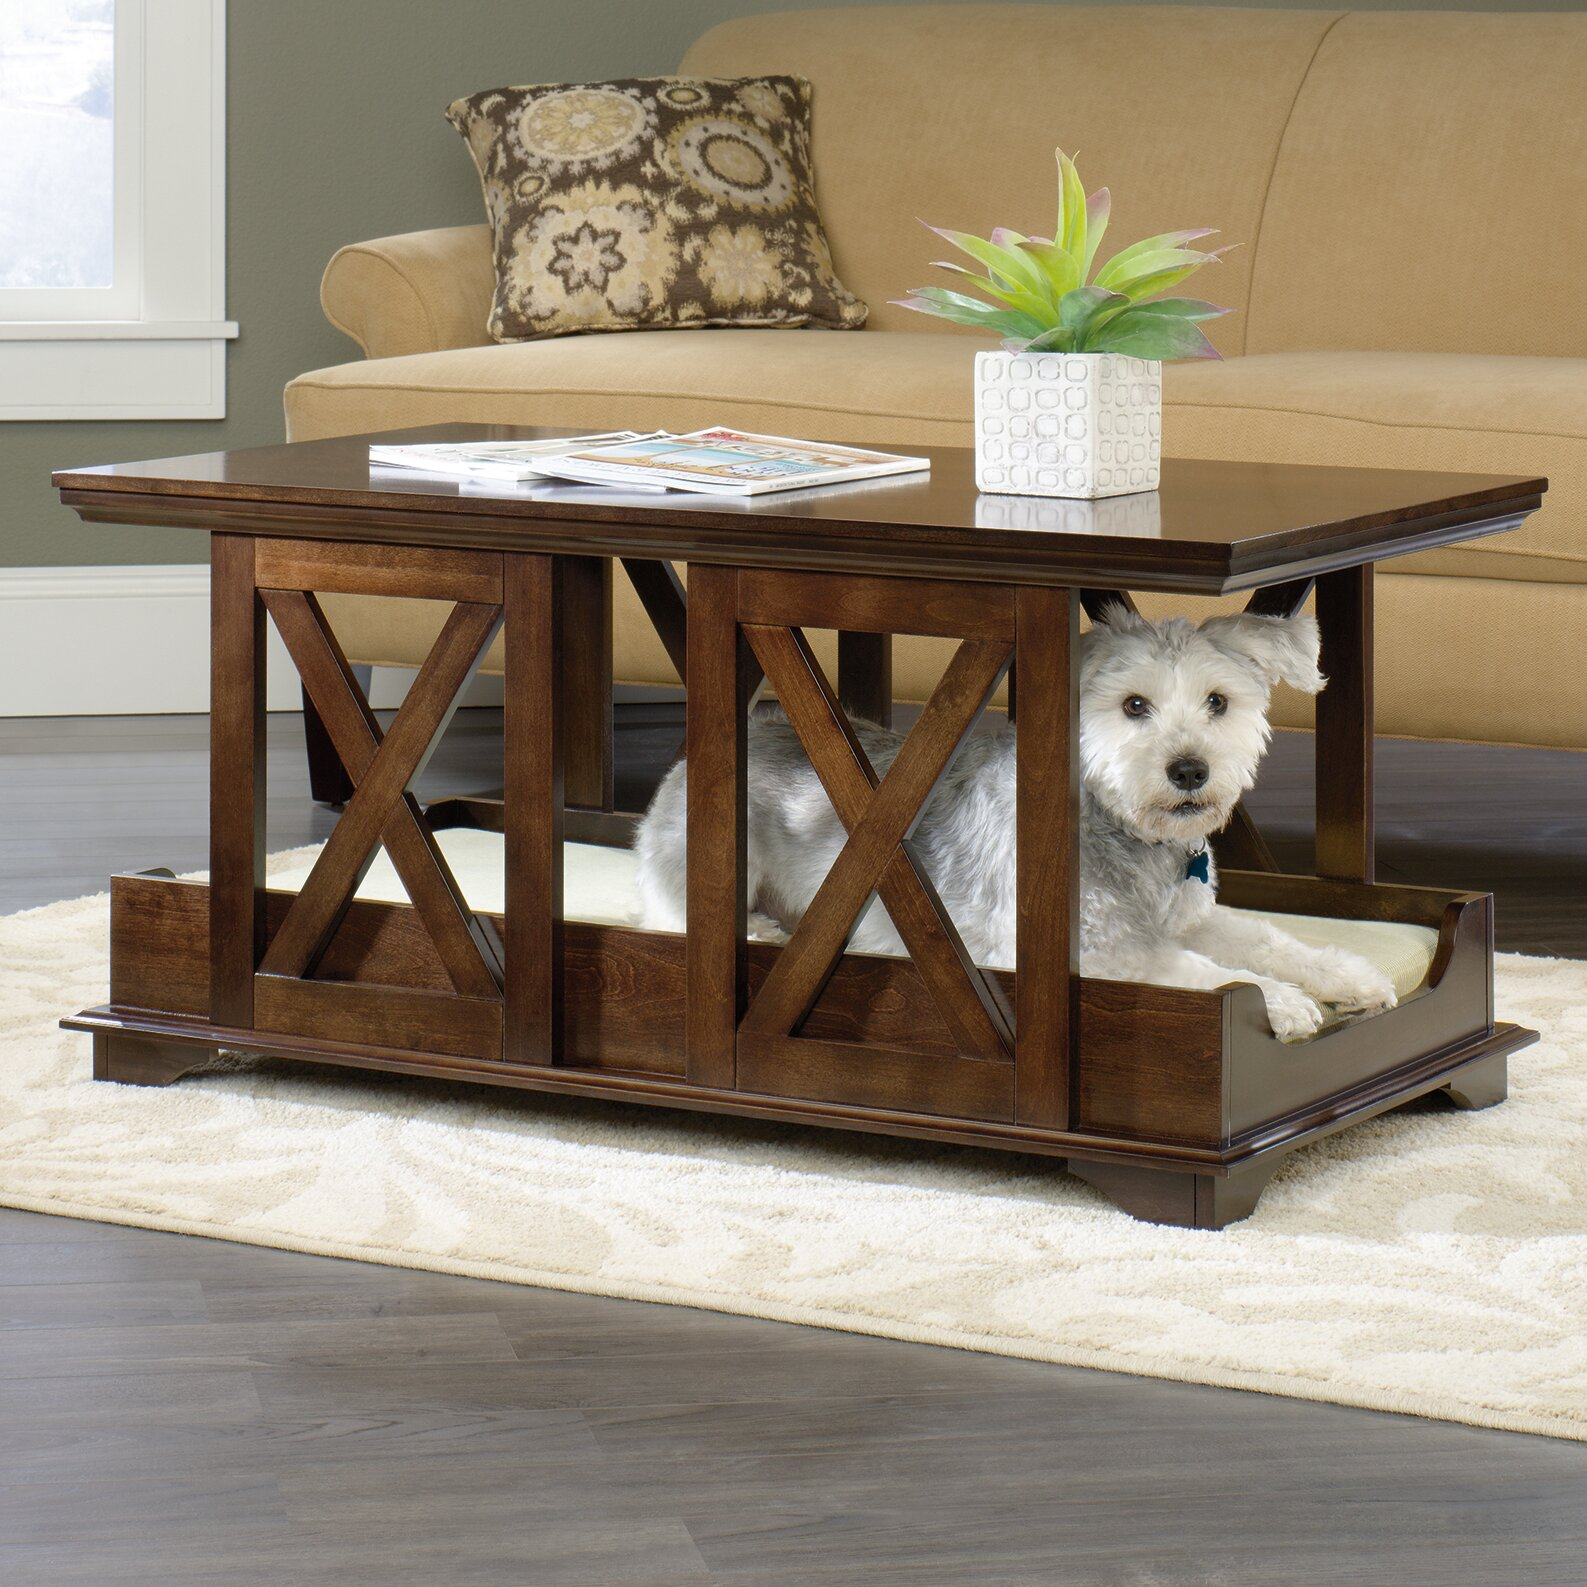 Coffee Table Dog Bed - Sauder Coffee Table Dog Bed & Reviews Wayfair